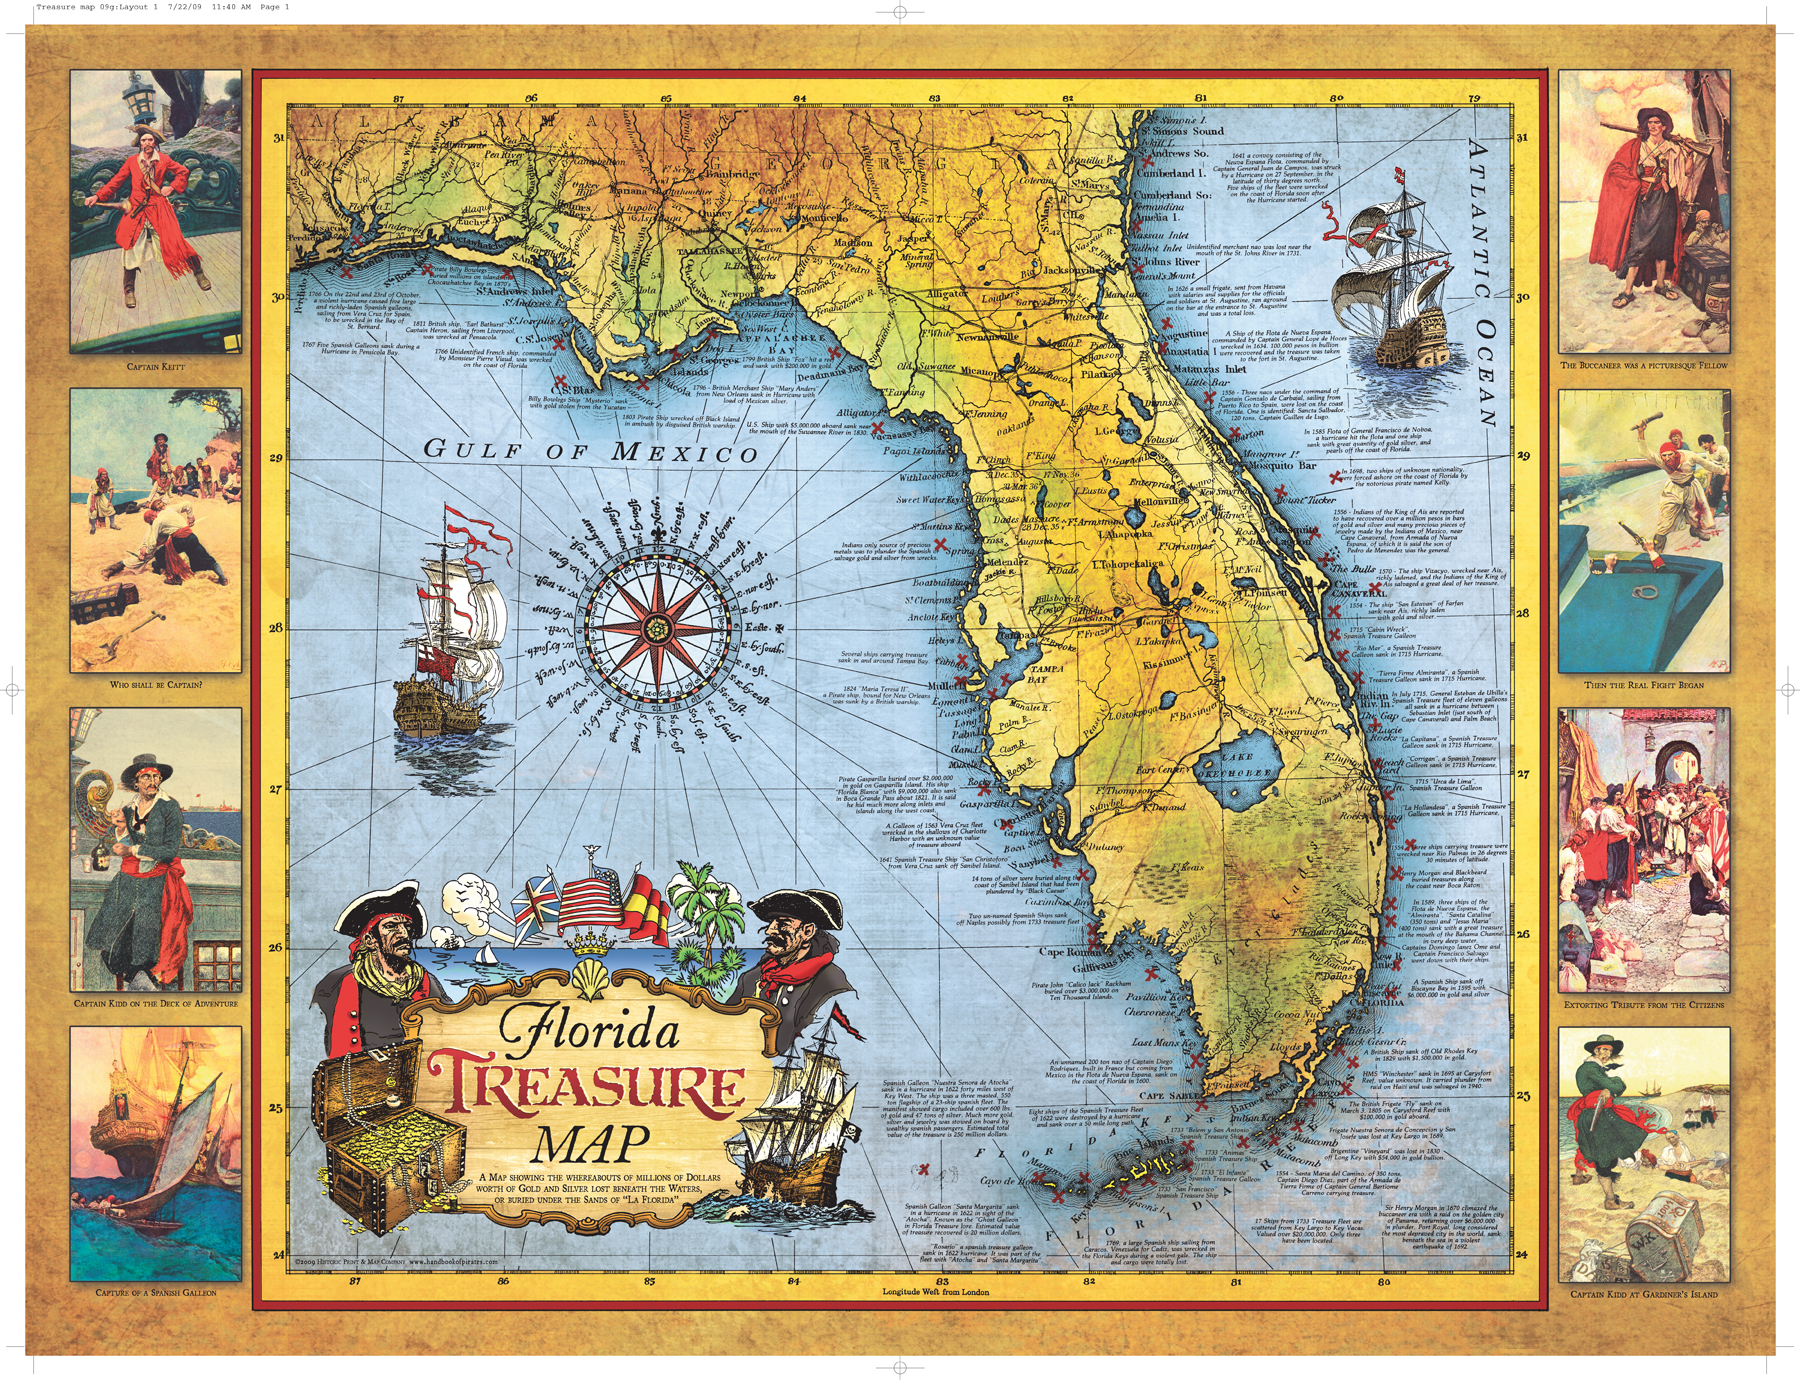 graphic about Printable Pirate Map titled Printable Pirate Treasure Map N2 absolutely free impression